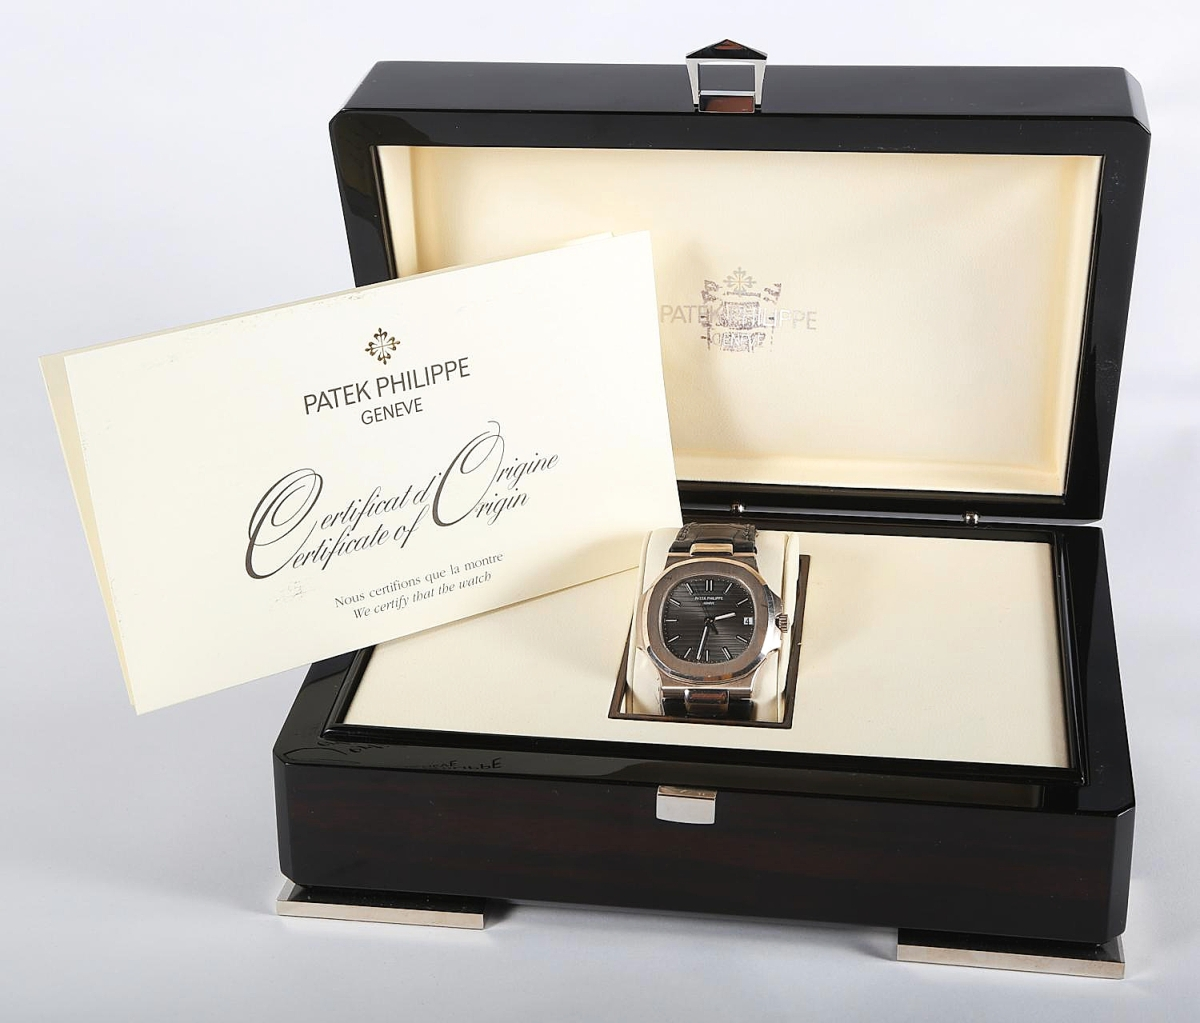 Premium watches bring premium — even retail-level — prices, as did the top lot of the sale, this circa 2009 Patek Philippe 18K white gold nautilus wristwatch with its original certificate, box, and all other factory packaging. It came from a Texas estate and will be staying in the United States, with an American buyer paying $53,750 for it ($3/5,000).